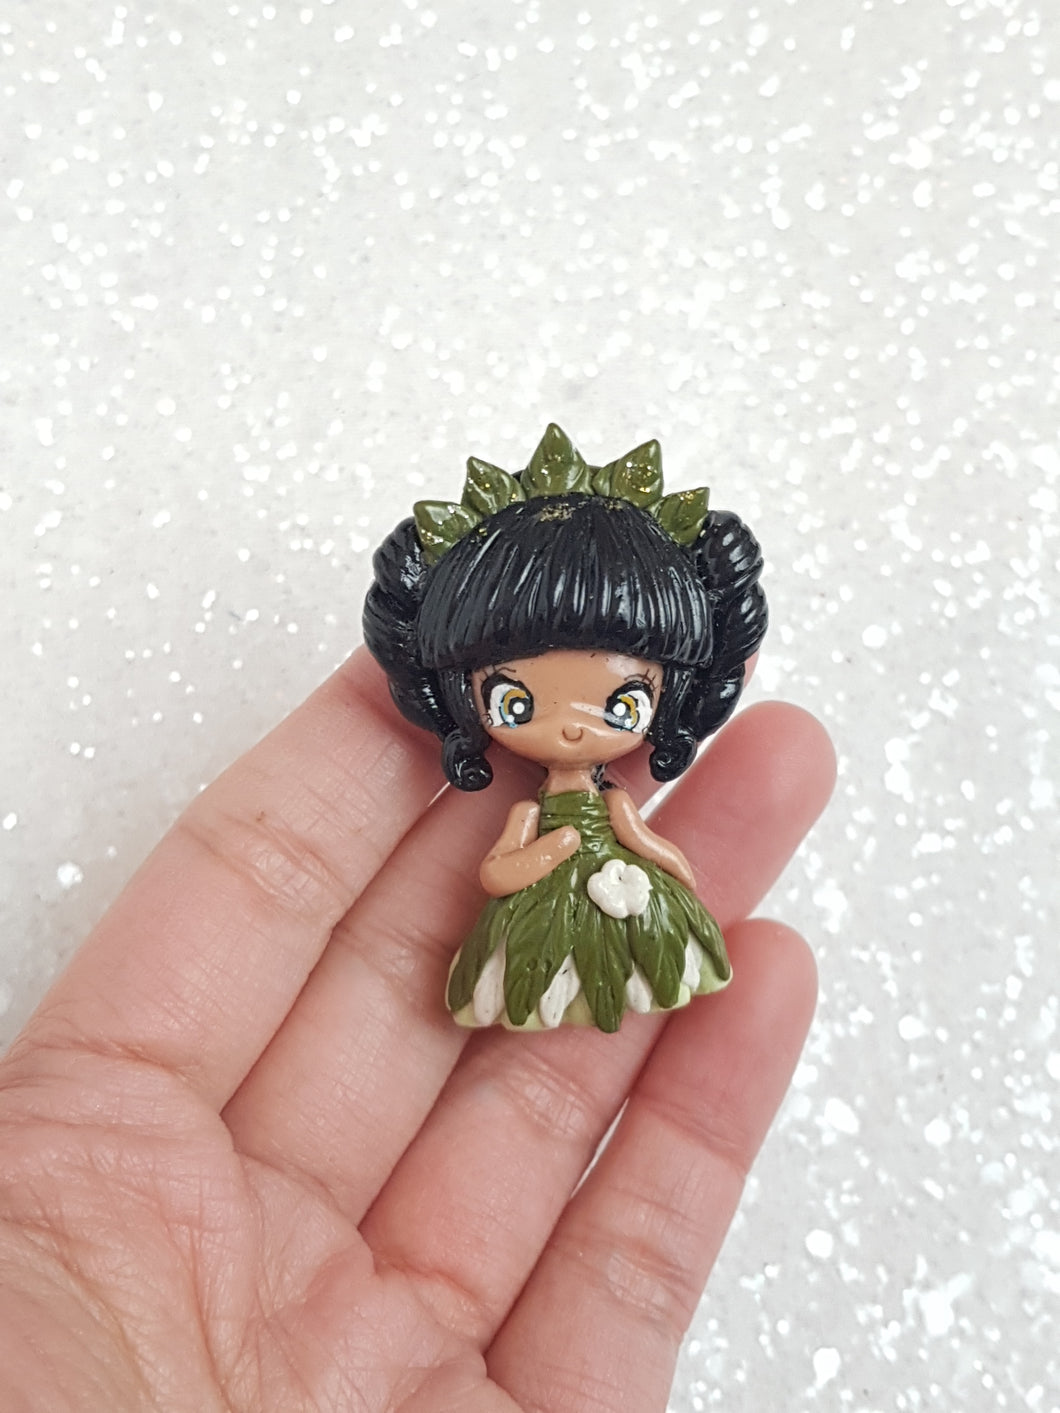 Clay Charm Embellishment - NEW LUXE PRINCESS A - Crafty Mood